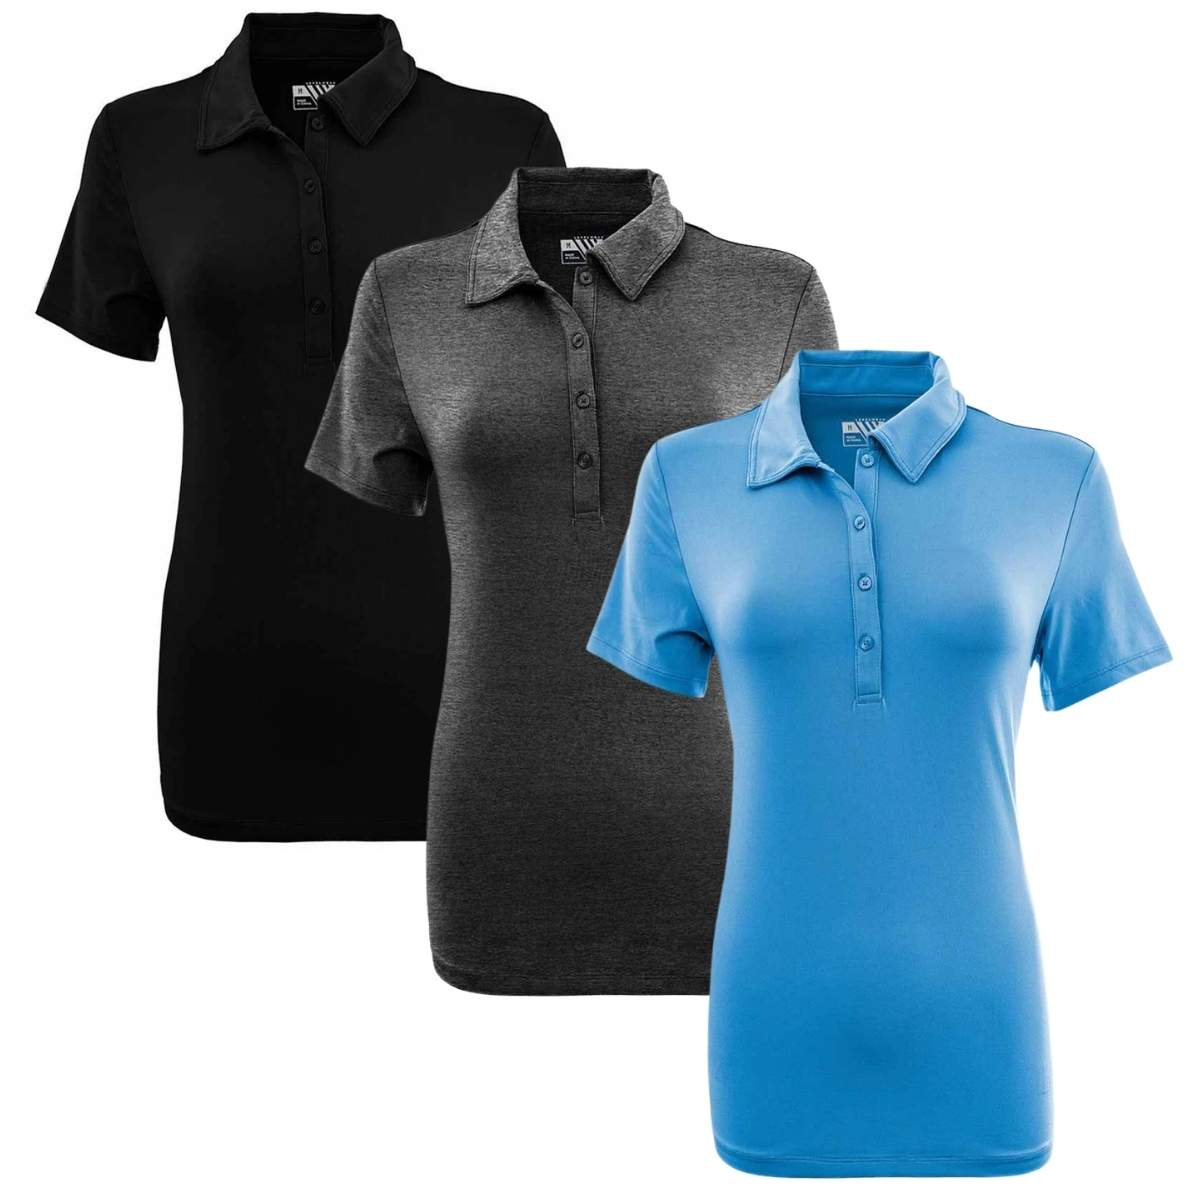 Levelwear Women's Bliss Polo